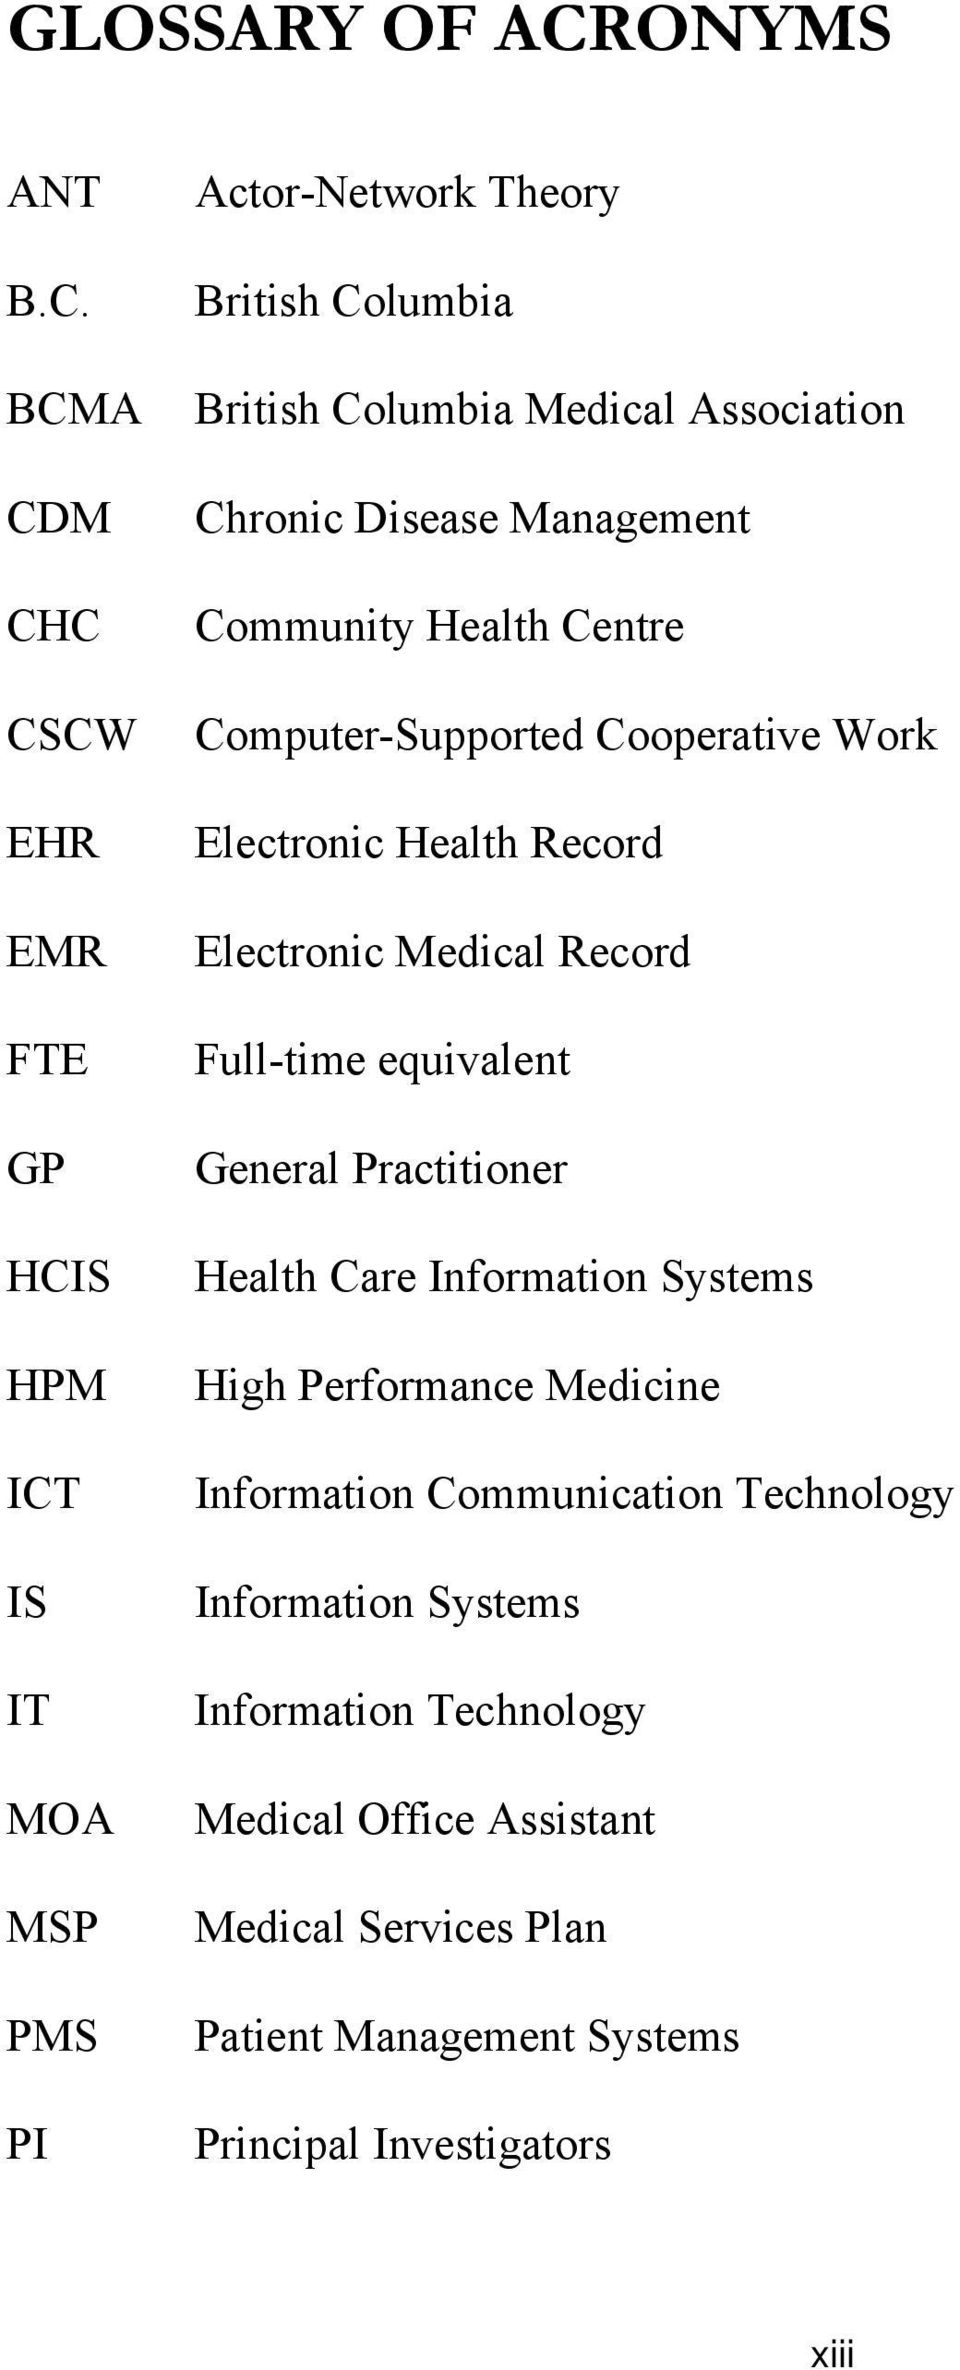 BCMA CDM CHC CSCW EHR EMR FTE GP HCIS HPM ICT IS IT MOA MSP PMS PI Actor-Network Theory British Columbia British Columbia Medical Association